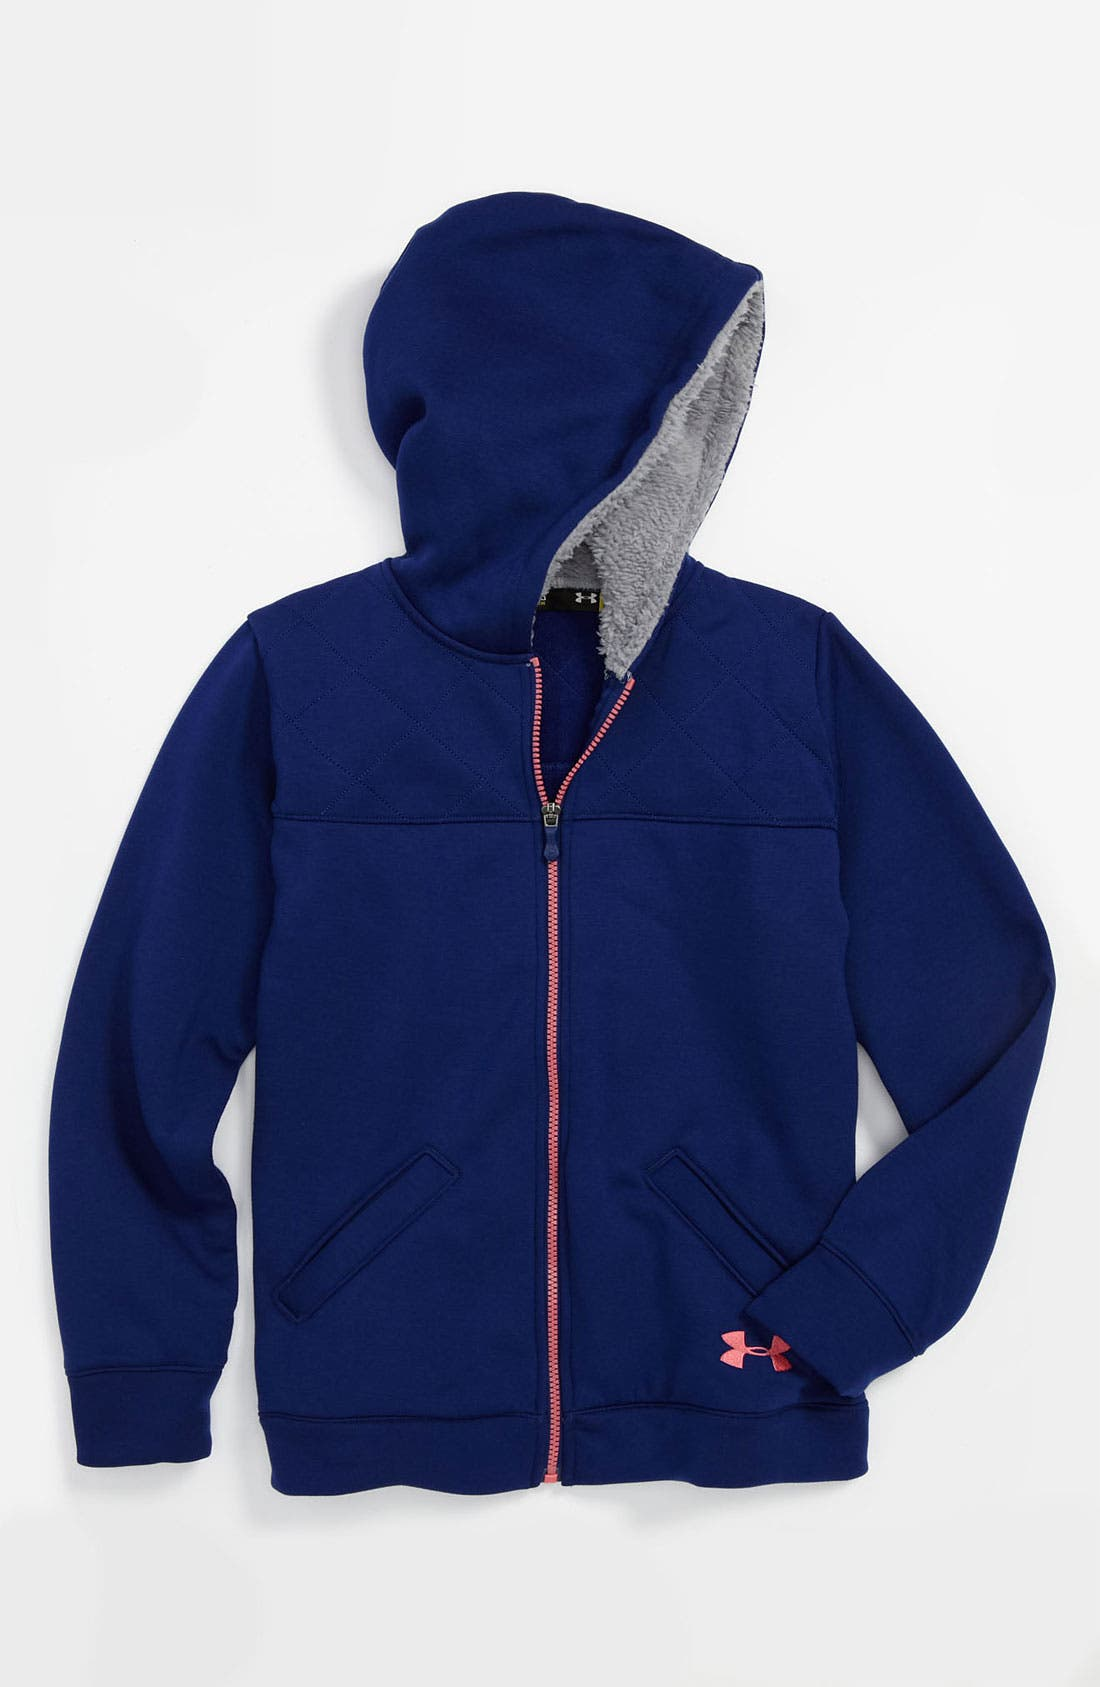 Alternate Image 1 Selected - Under Armour 'Super Warm' Hoodie (Big Girls)